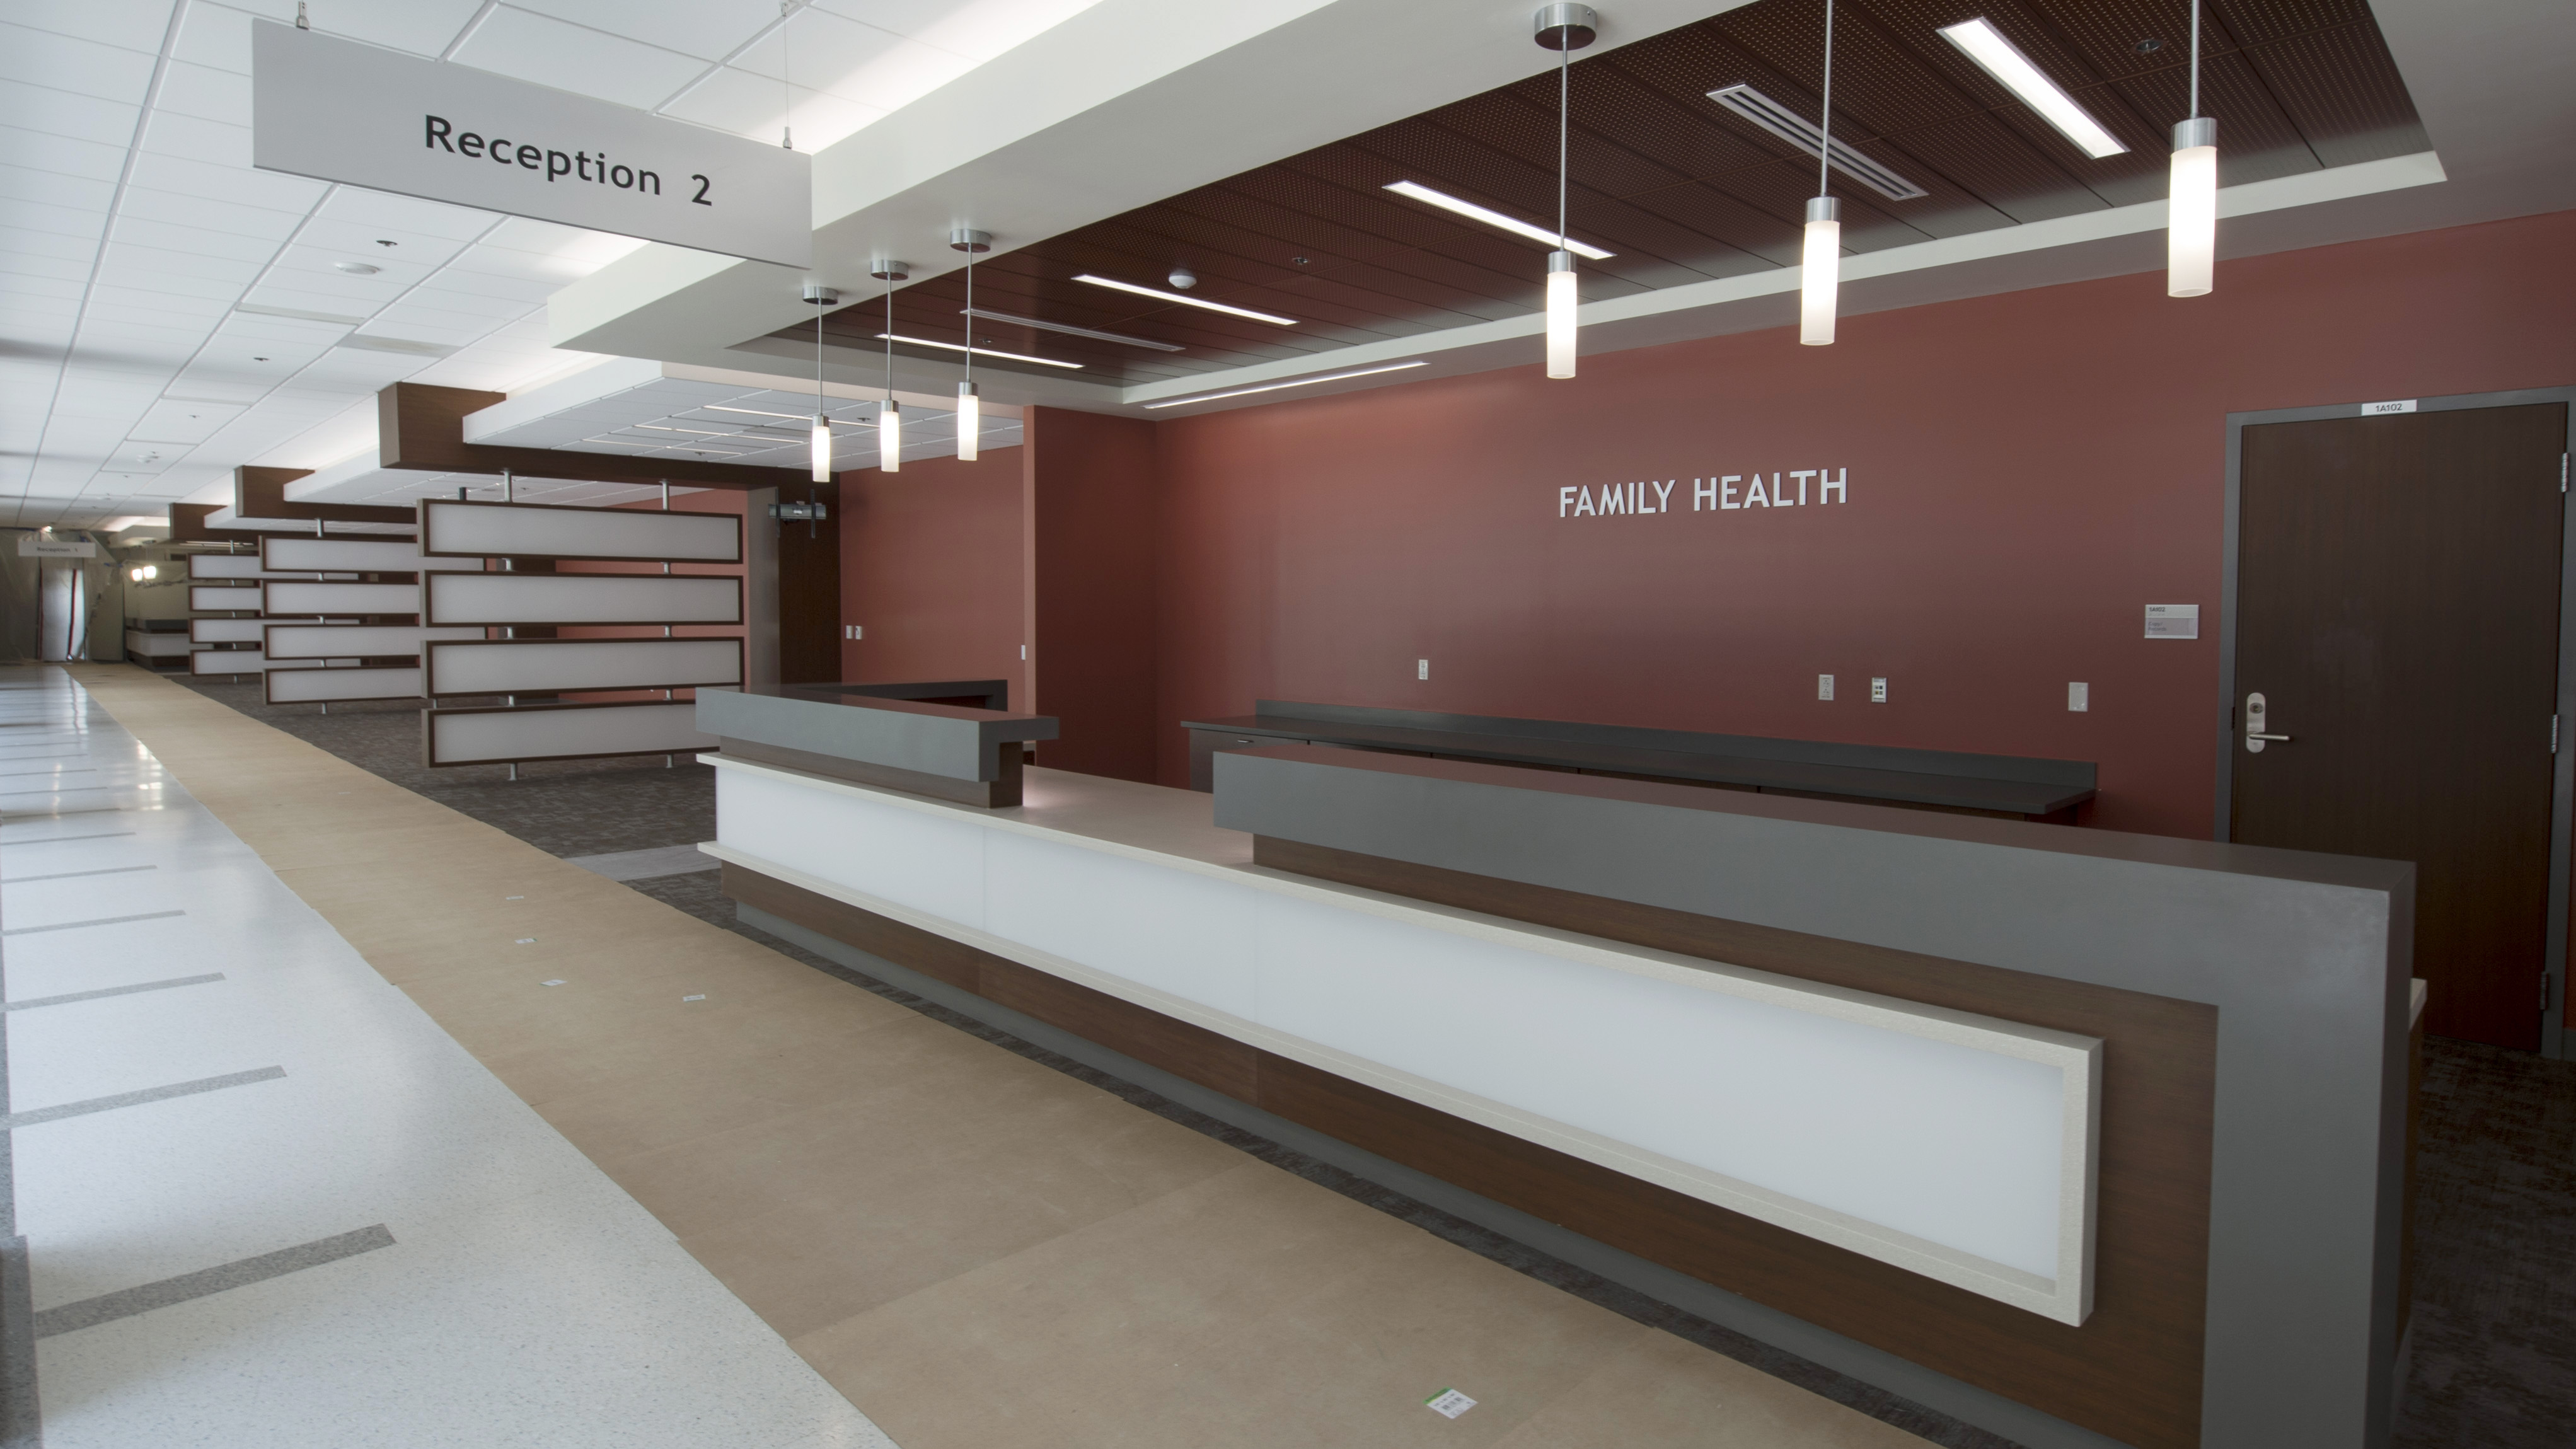 59th Medical Wing Clinics Services Set To Move To New